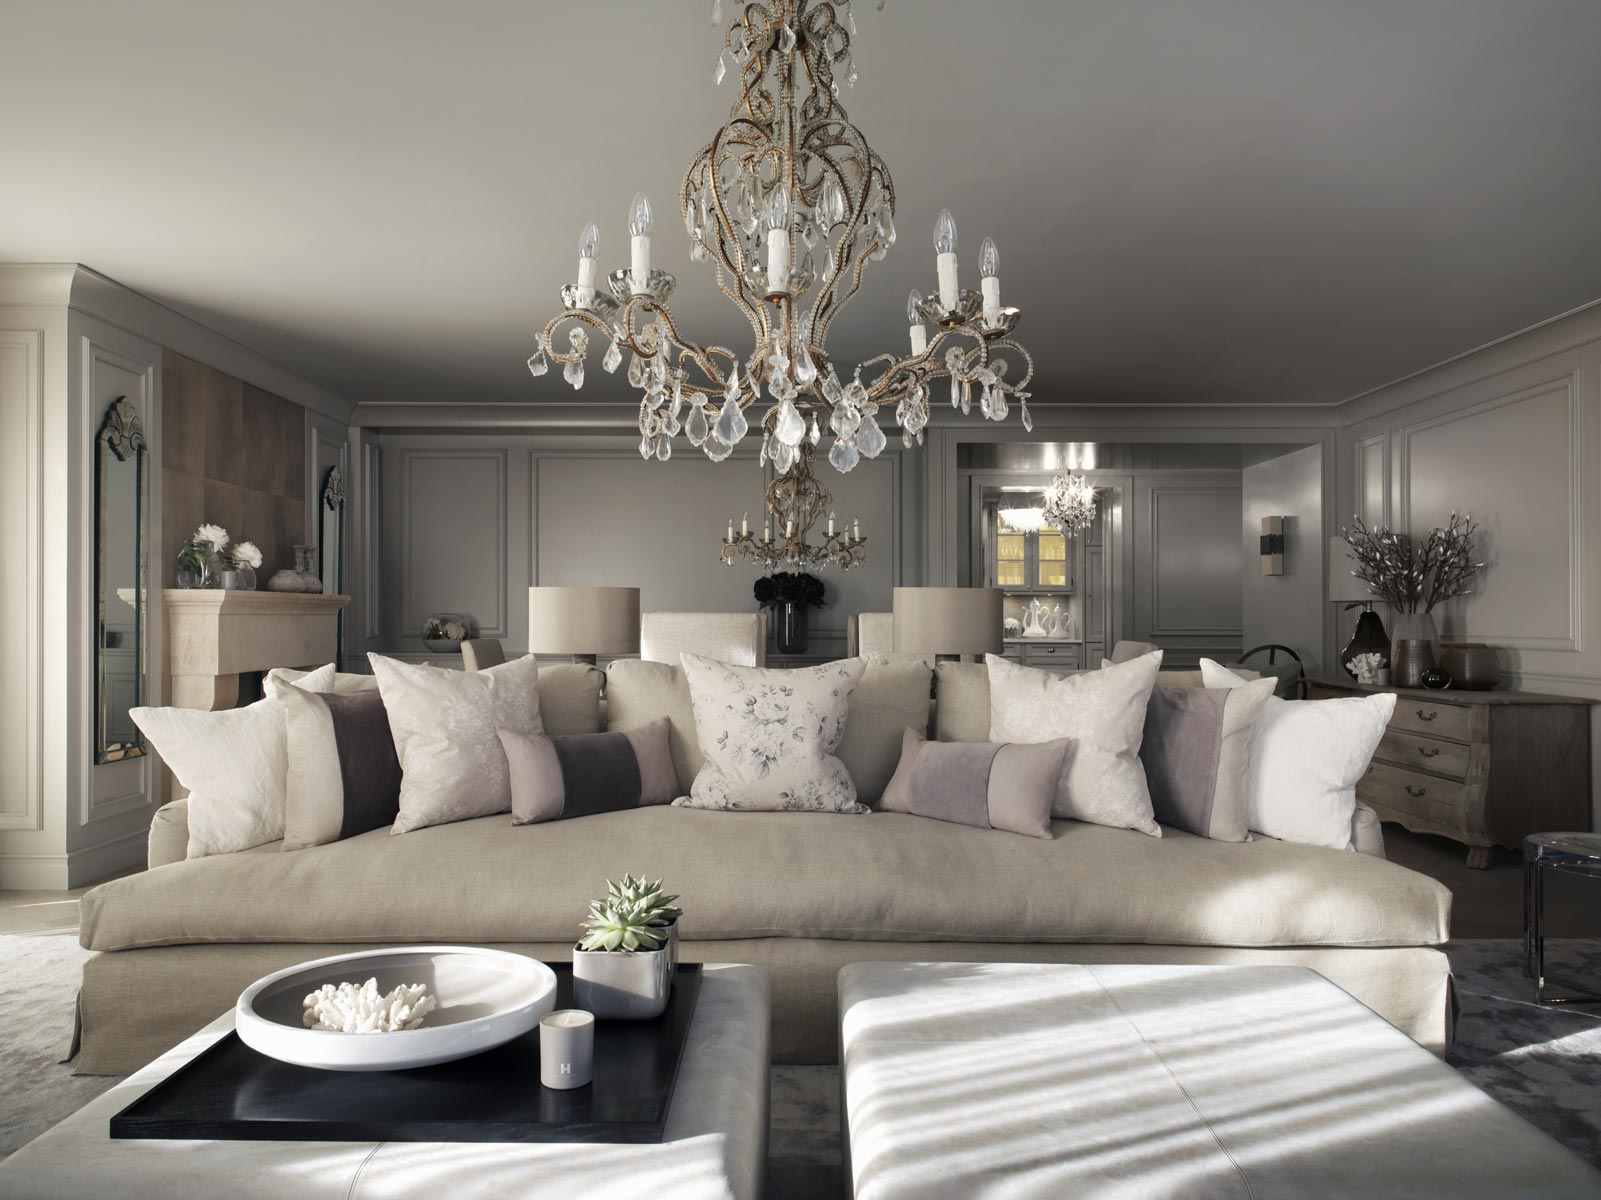 Top 10 kelly hoppen design ideas for Interior decorating ideas